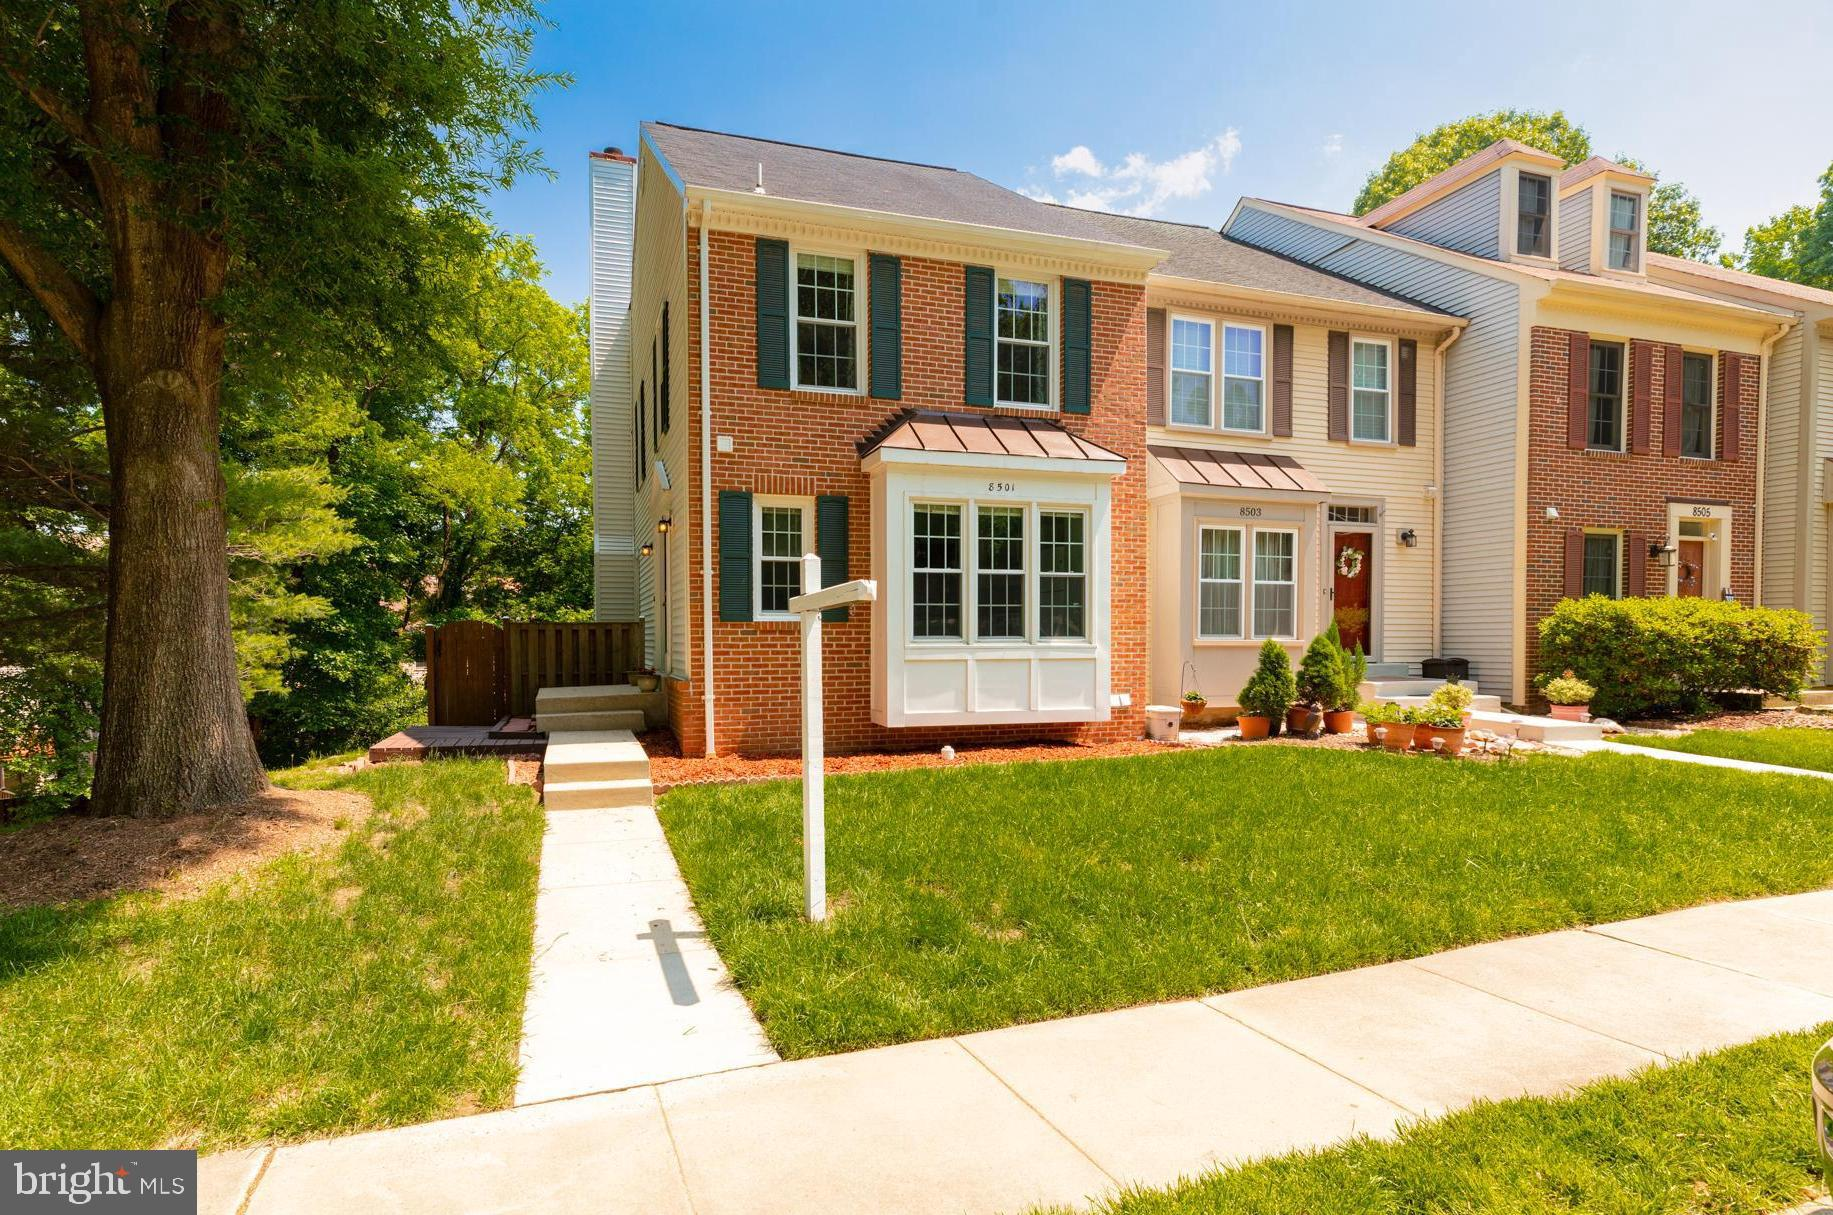 Immaculate end unit with peaceful wooded views, fenced yard with 2 decks, sunny walkout basement with fireplace, recessed lights, crown molding & a full bath, windows replaced & both sliders replaced with French doors, spacious master suite w/ 3 closets & vaulted ceilings, MBA w/ double sinks, siding replaced with vinyl siding & more! 2 assigned parking spaces # 963 & 955.